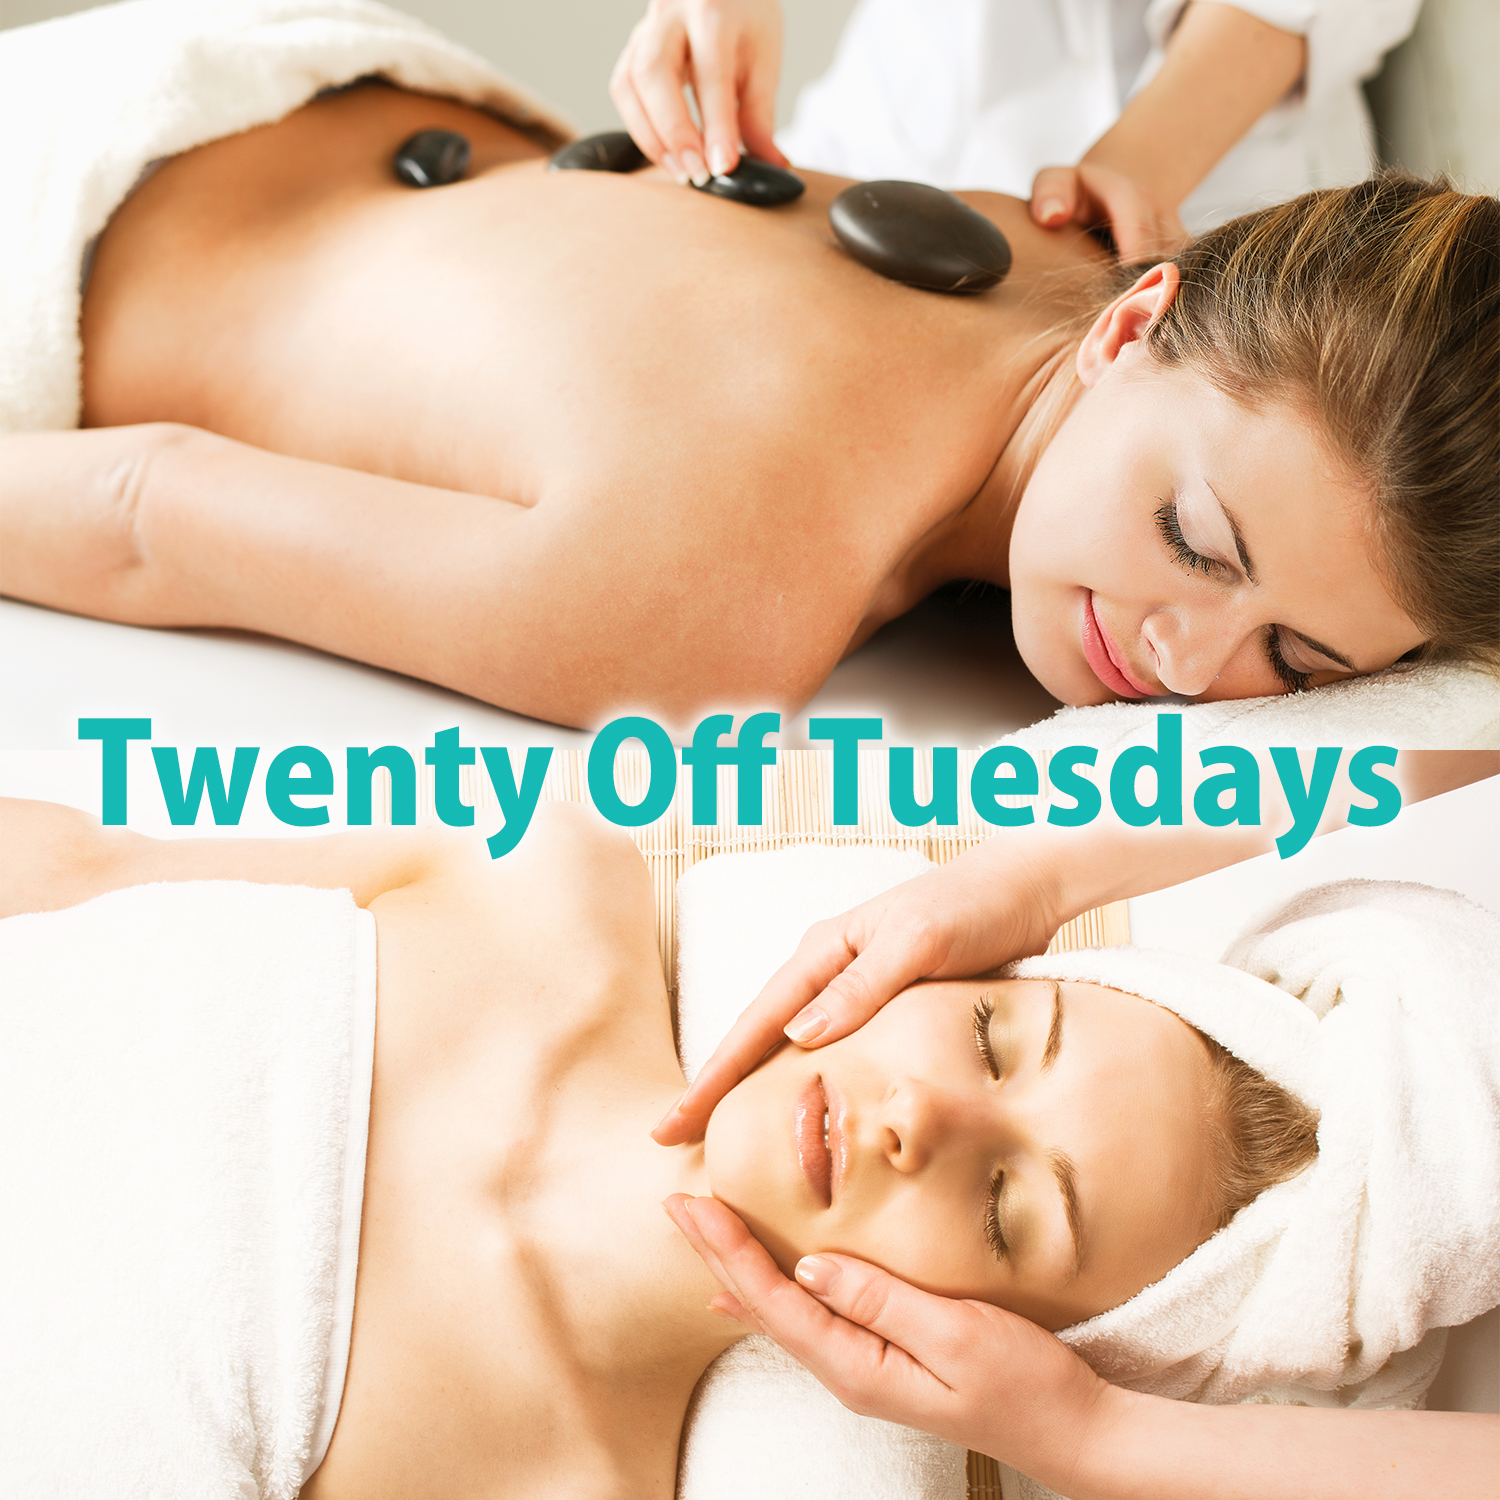 Image of a woman getting a massage and a woman getting a facial.